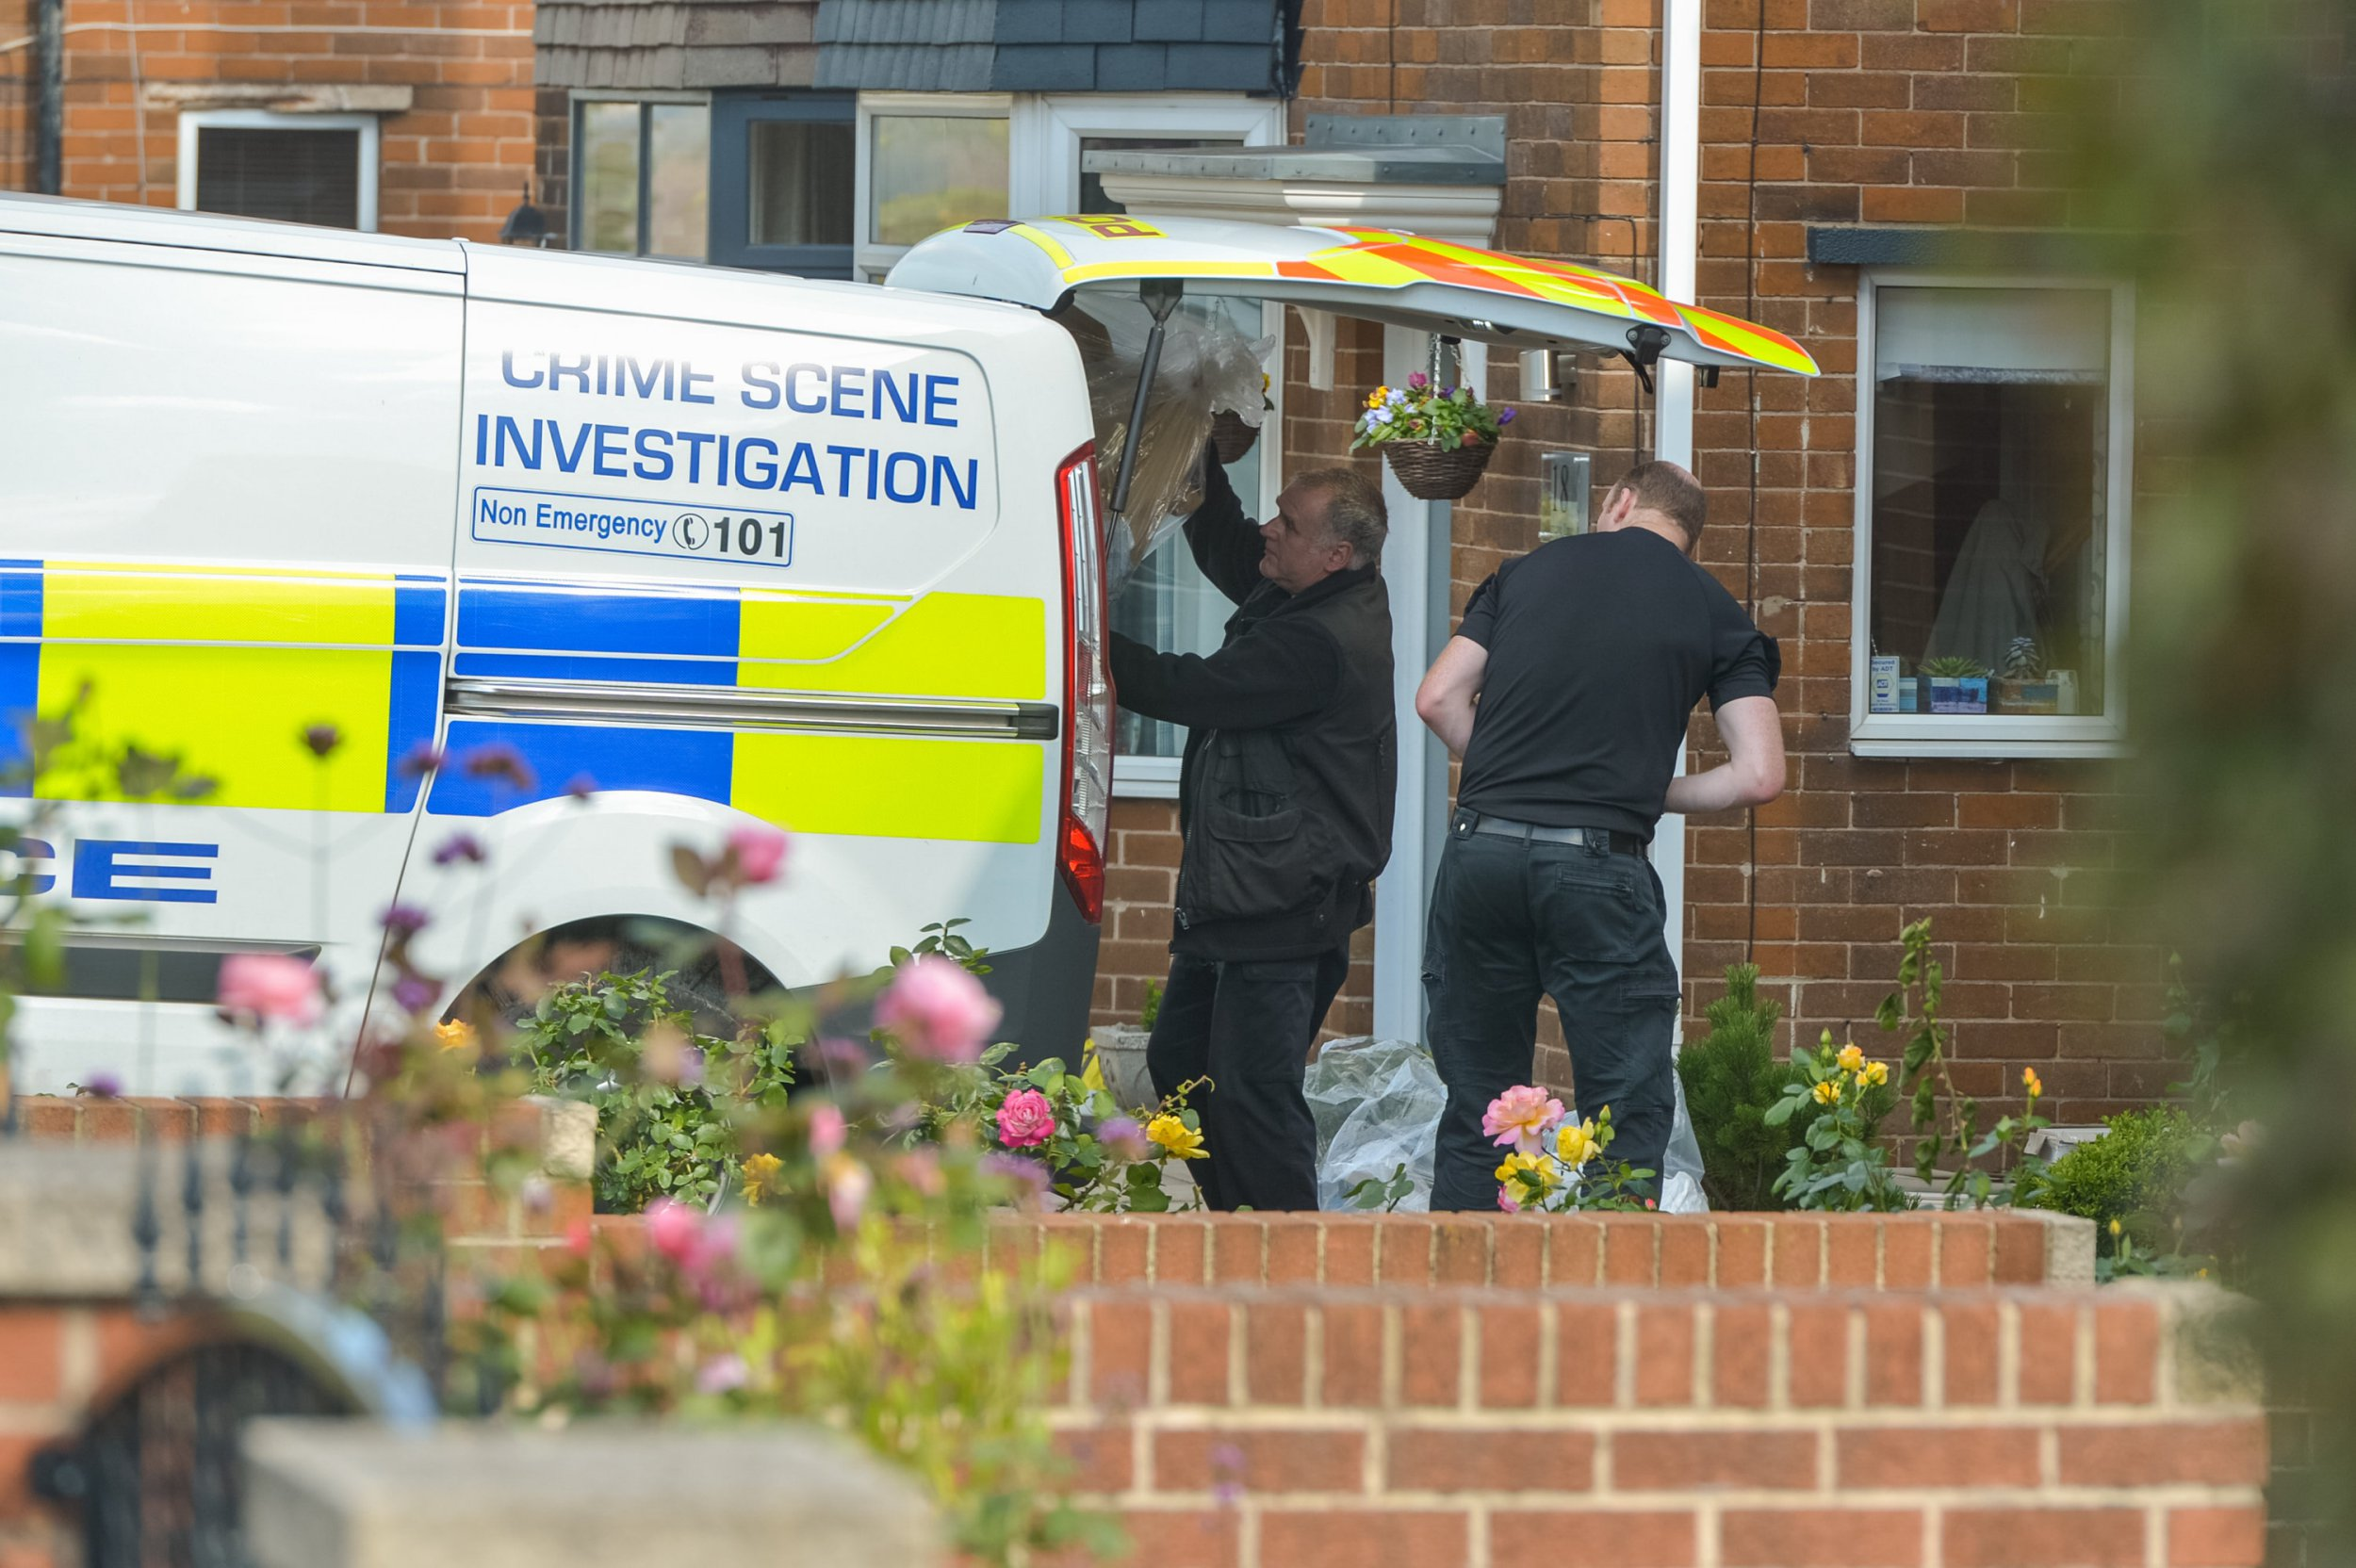 Pensioner, 83, admits stabbing husband, 85, to death in their home